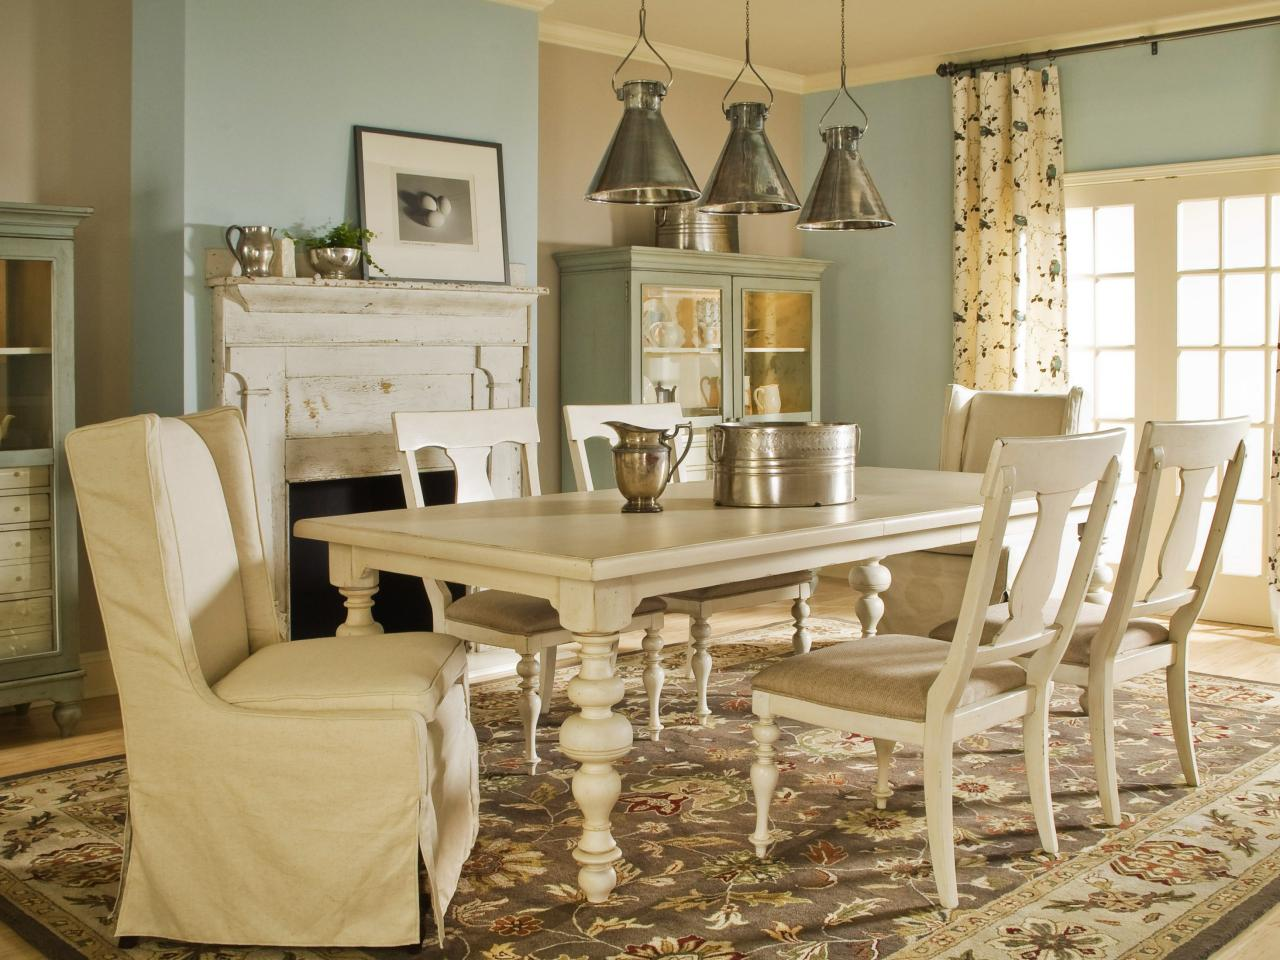 Spice up your dining room with stylish slipcovers living for Dining room living room ideas